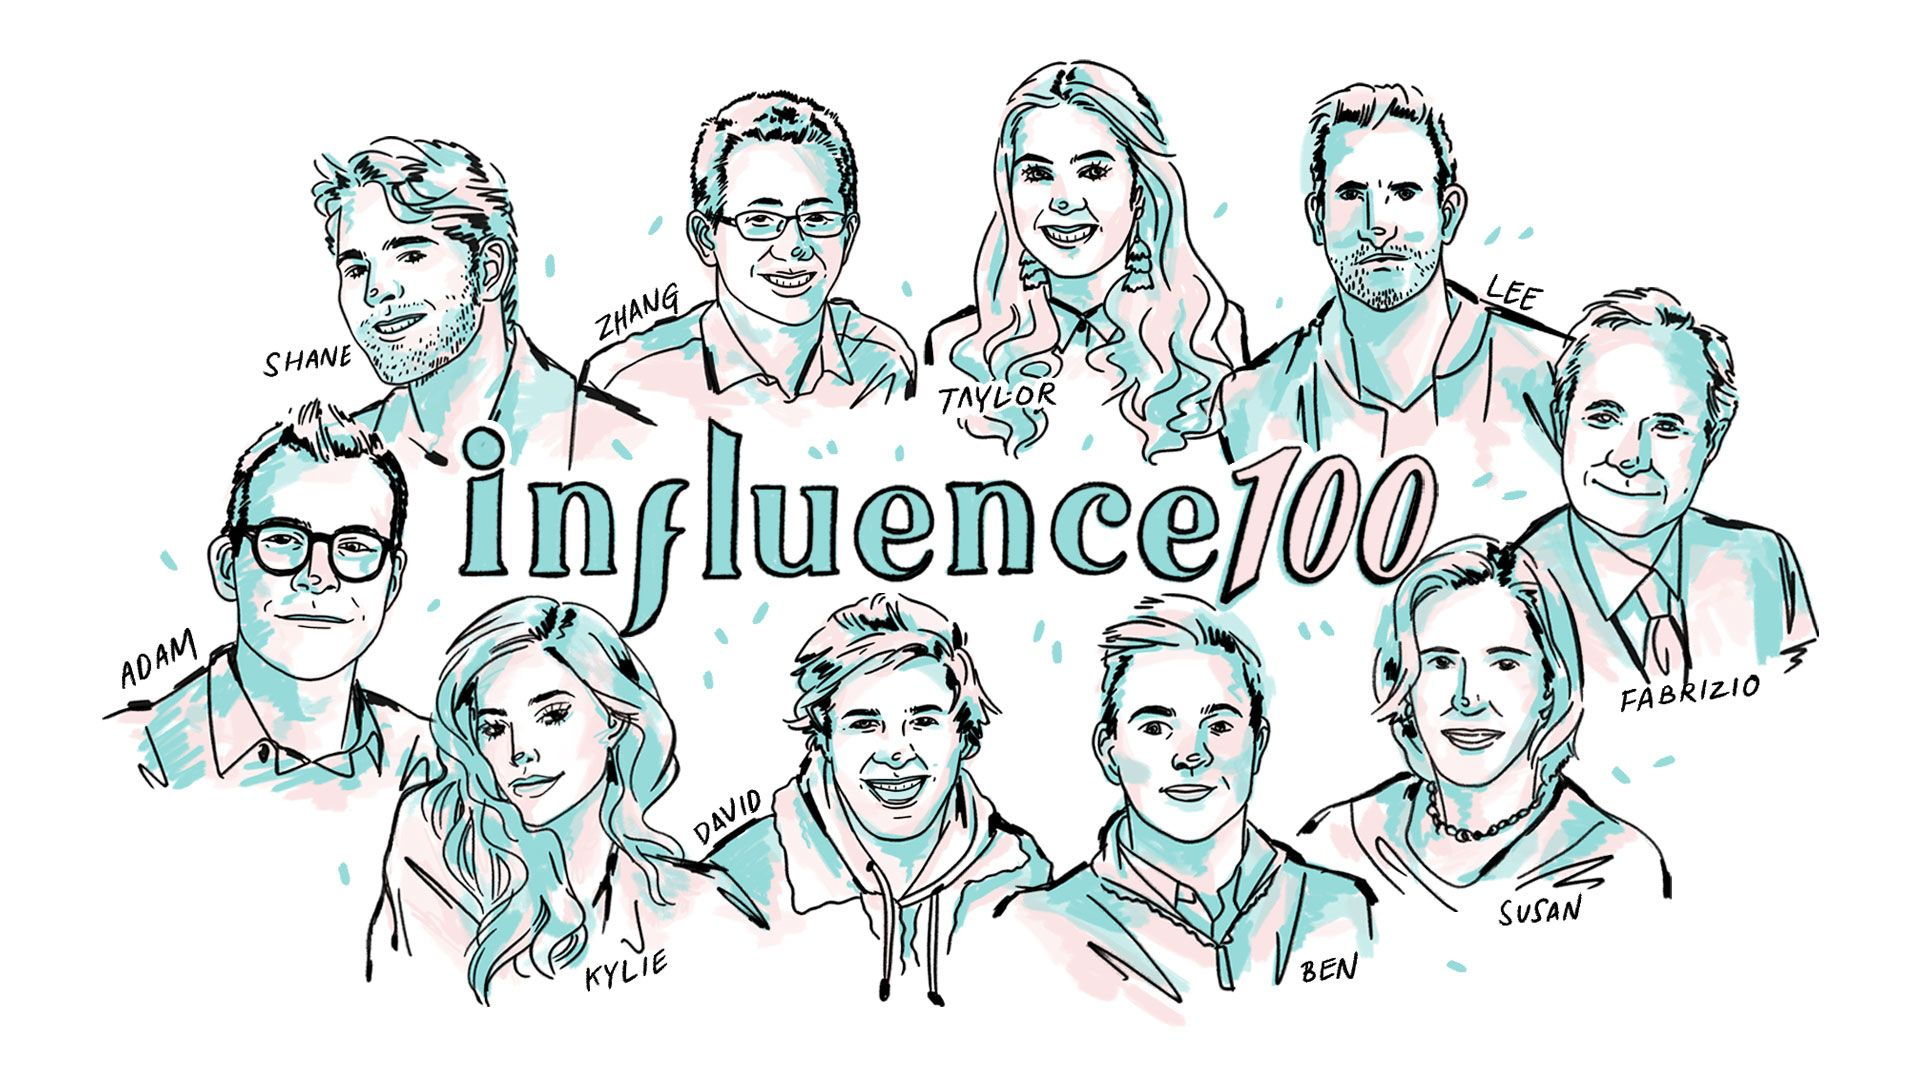 Announcing Influence 100